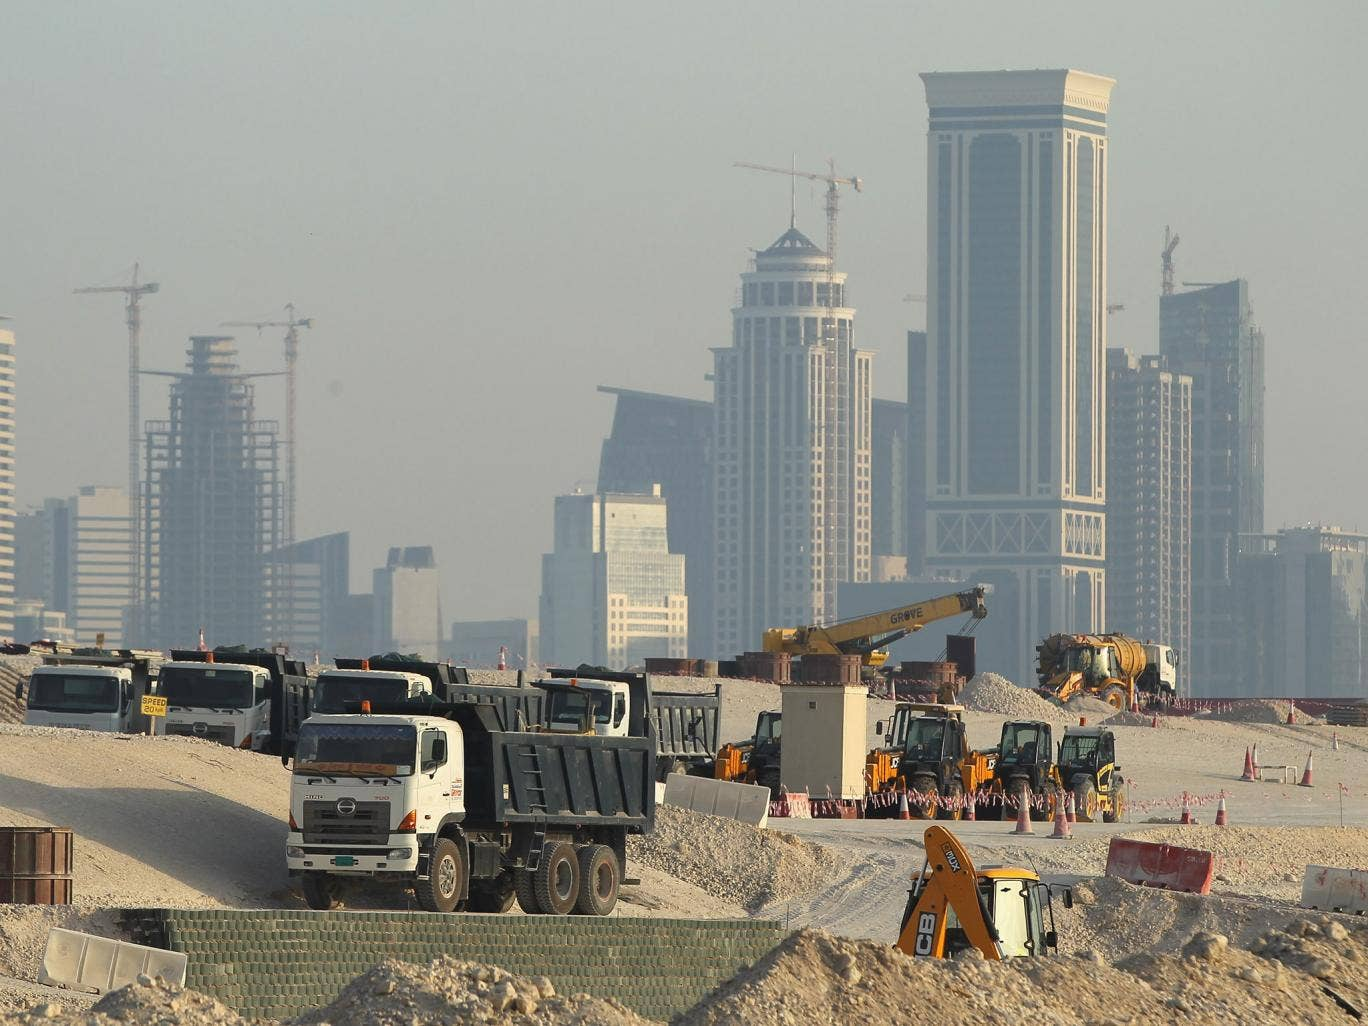 FIFA are to investigate the conditions of construction workers in projects at Lusail City